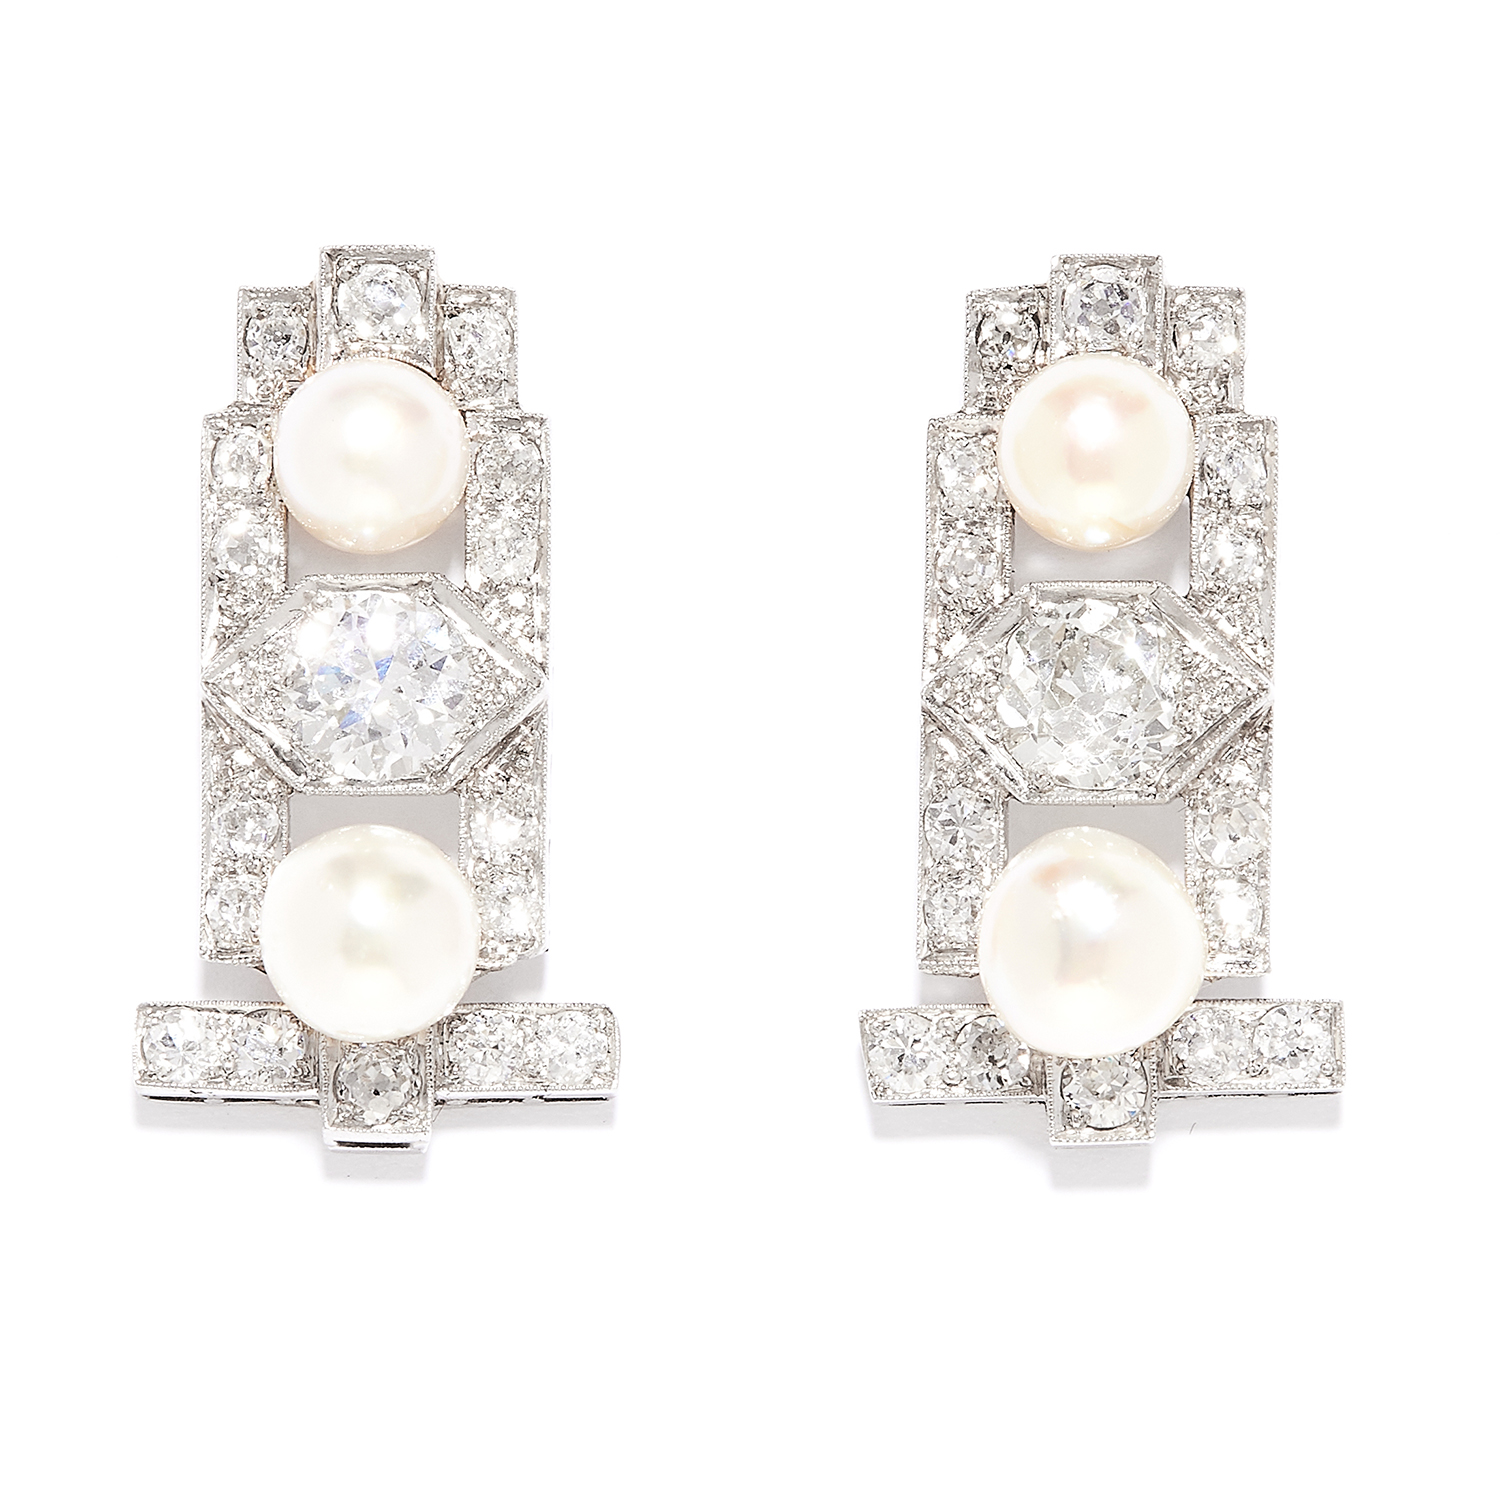 Los 33 - ANTIQUE ART DECO DIAMOND AND PEARL EARRINGS in 18ct white gold, in Art Deco style, each set with a